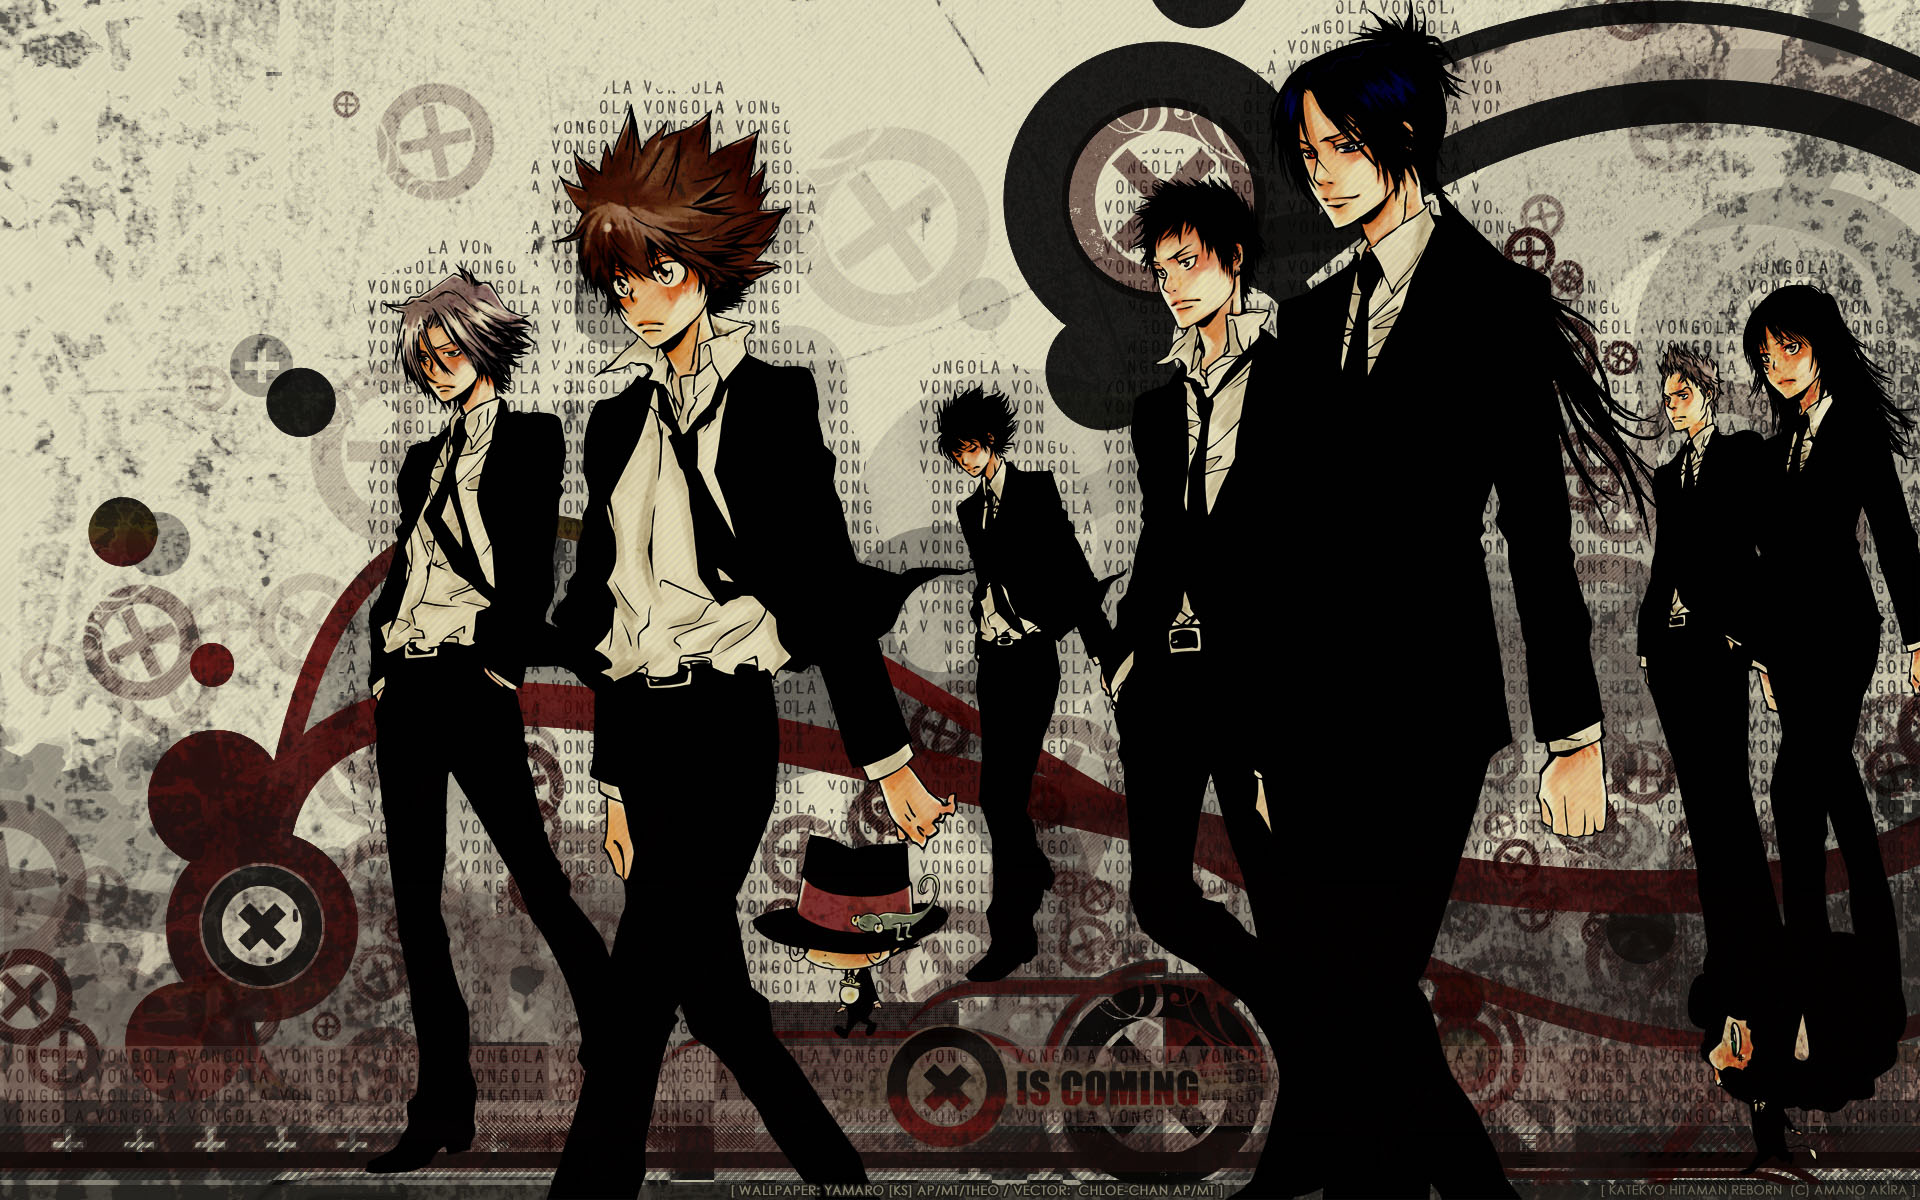 vongola family computer wallpapers desktop backgrounds